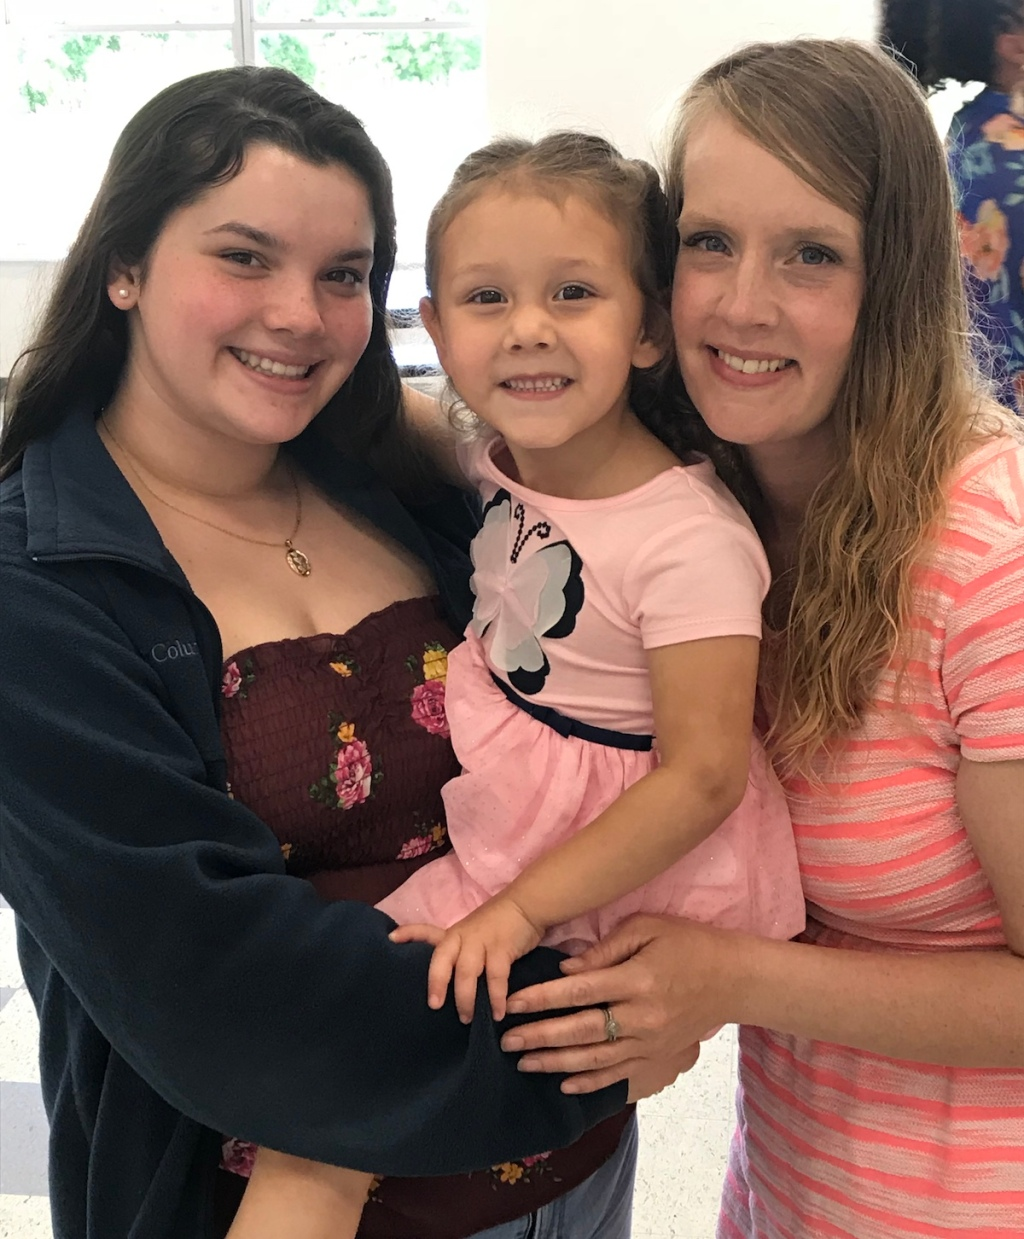 two woman holding young girl smiling at camera